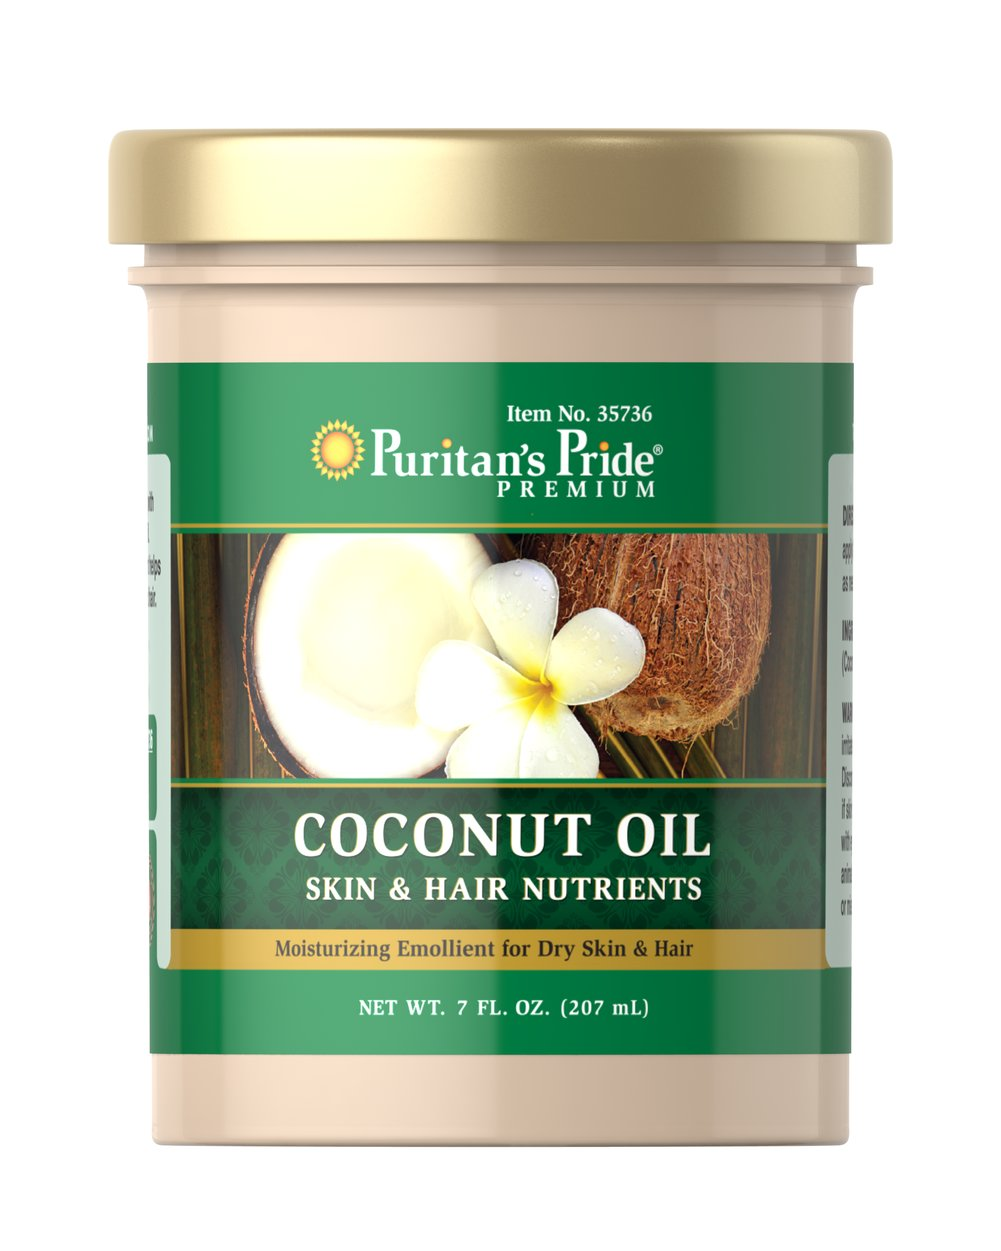 Coconut Oil for Skin & Hair <p>Pamper your body with  Coconut Oil! This exotic topical nutrient will help moisturize and soften dry, rough skin – and can even be used in your hair! And like the name implies, there's just one ingredient: coconut oil! No fillers or added fragrances.</p> 7 fl oz Oil  $8.99